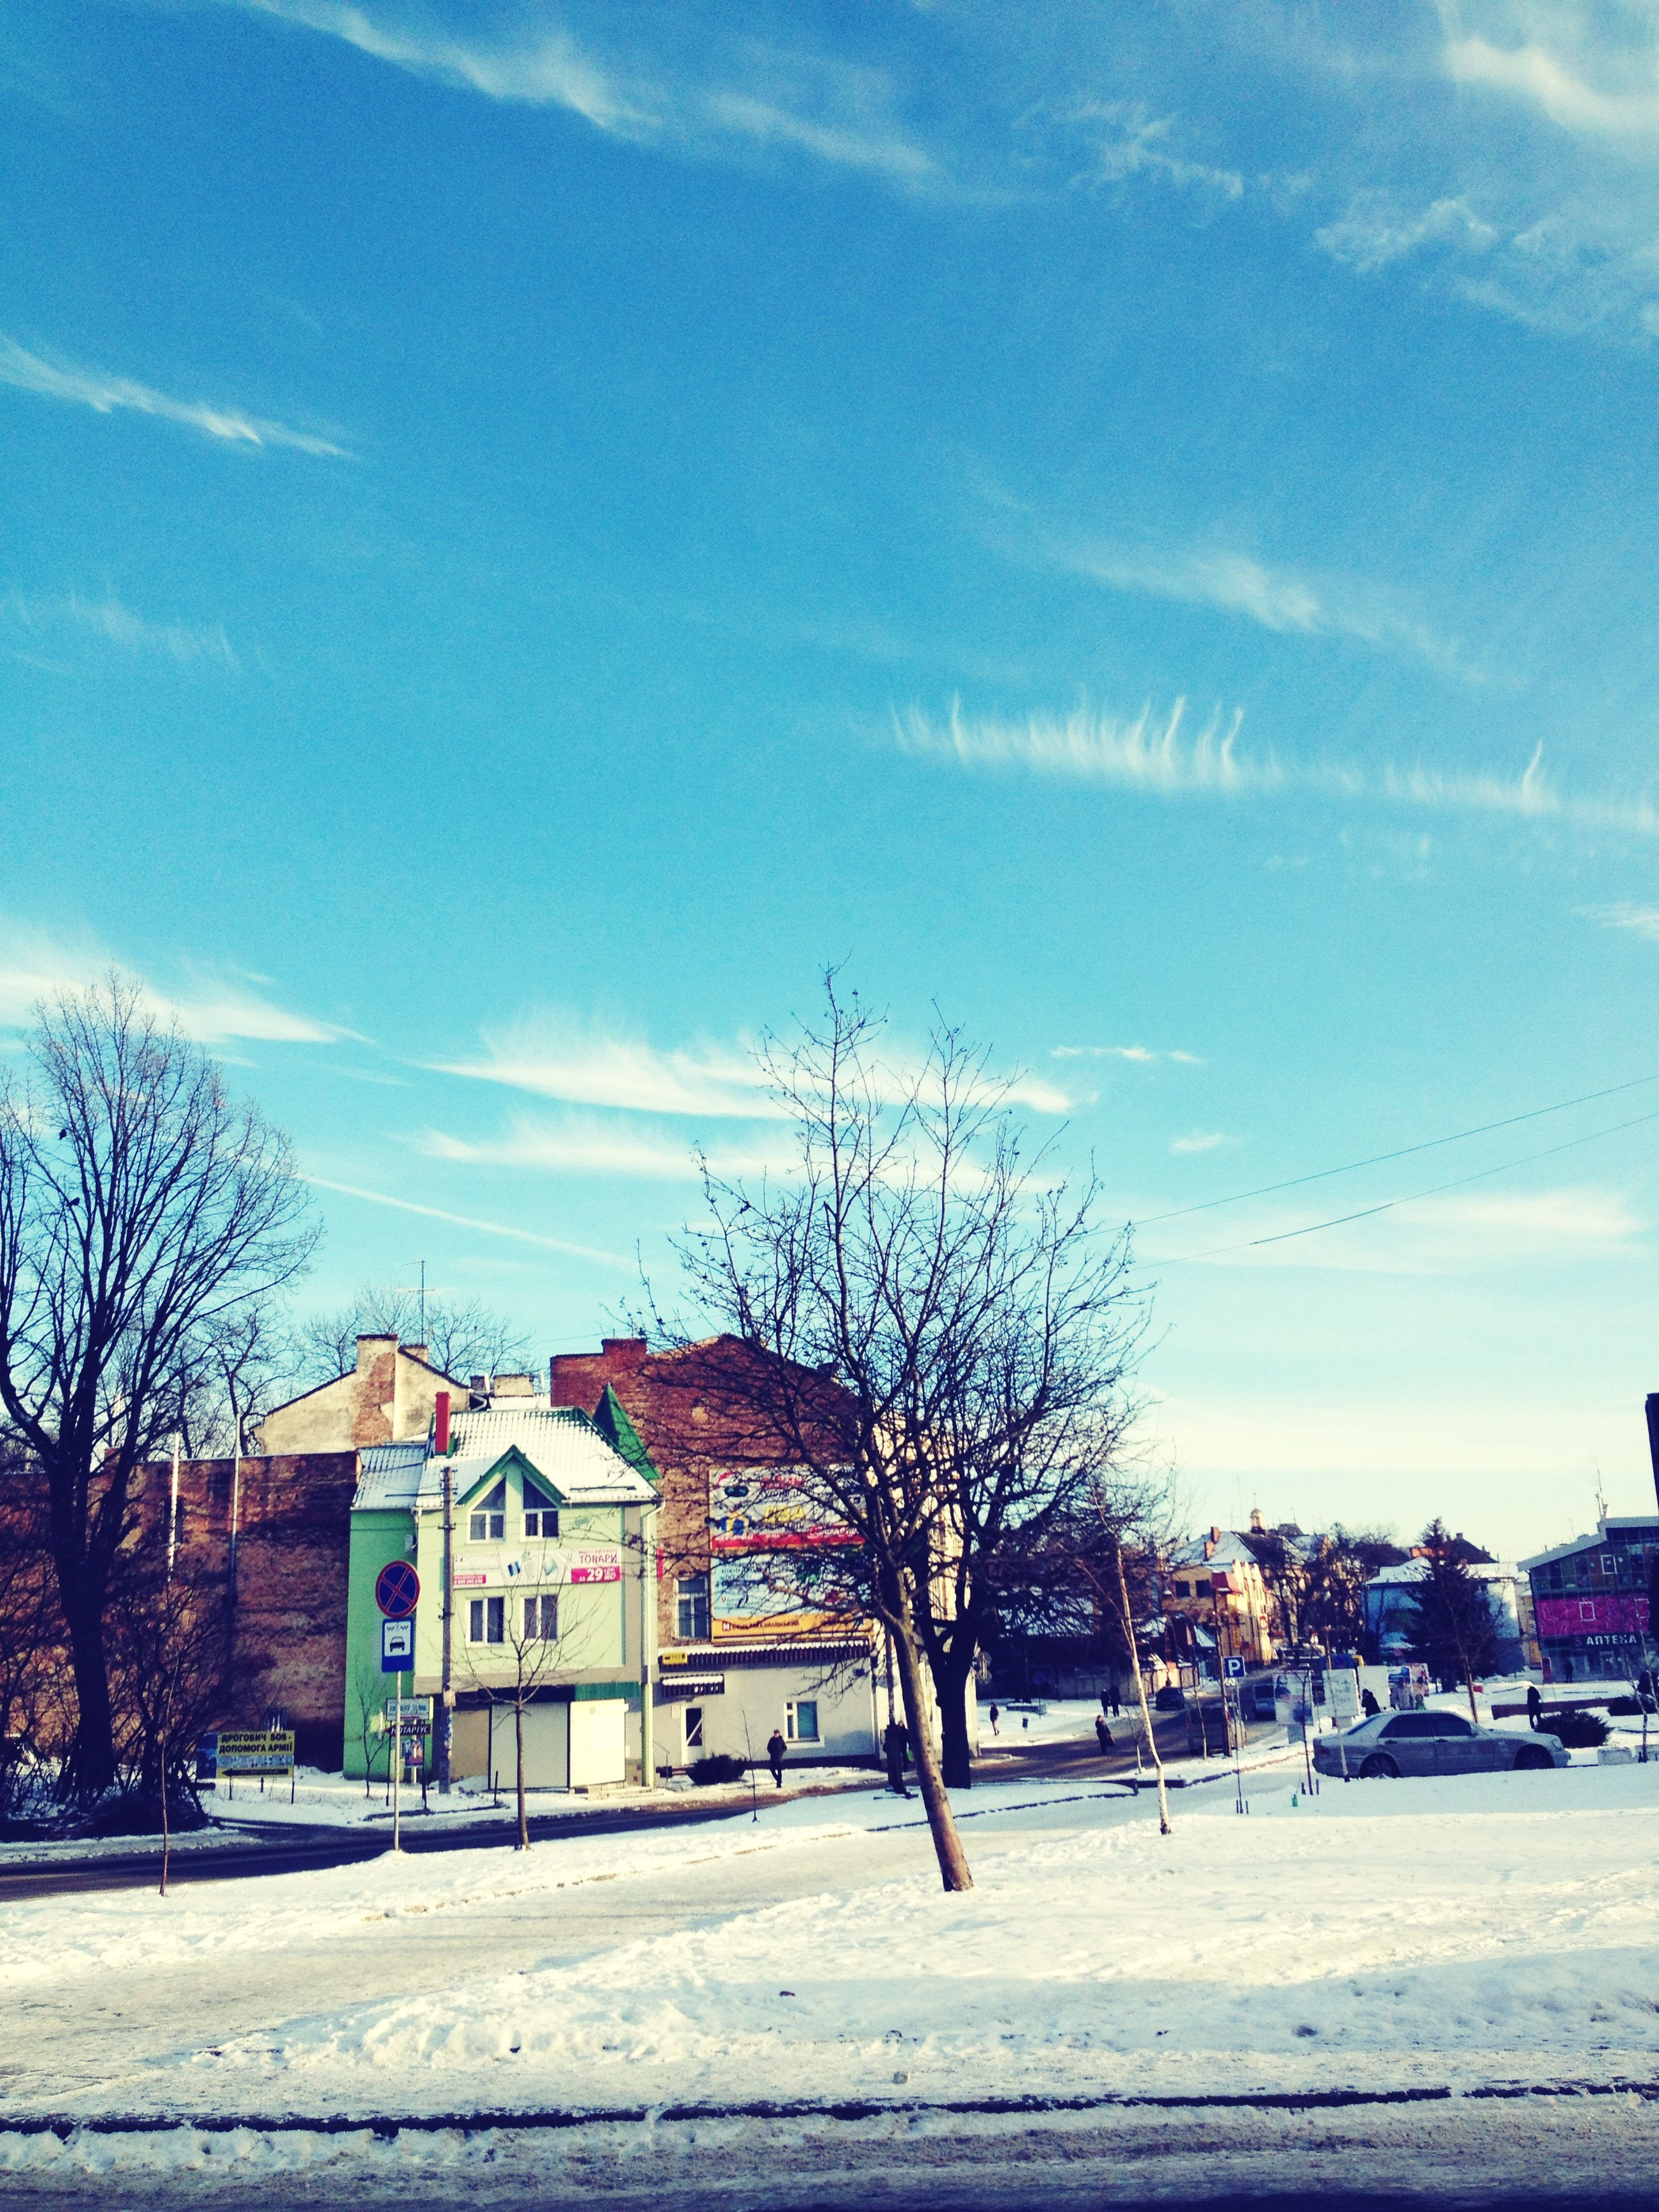 building exterior, bare tree, architecture, built structure, tree, sky, house, residential structure, snow, residential building, winter, cloud - sky, branch, street, cloud, cold temperature, car, transportation, outdoors, day